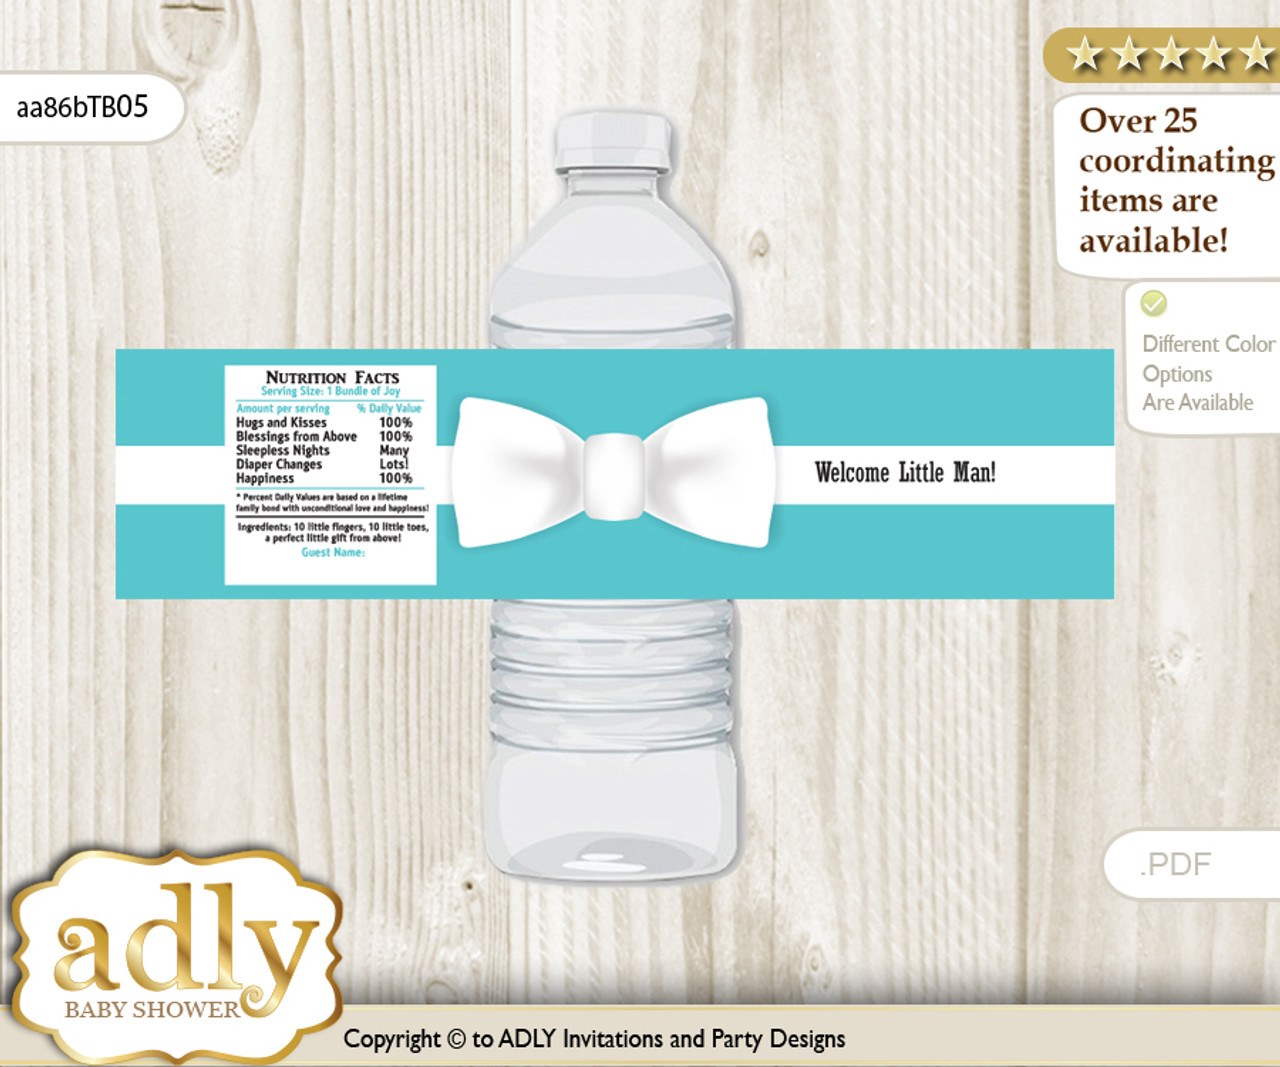 43c067c545 Boy Bow tie Water Bottle Wrappers, Labels for a Bow tie Baby Shower, White,  Tiffany Co - ADLY Invitations and Digital Party Designs